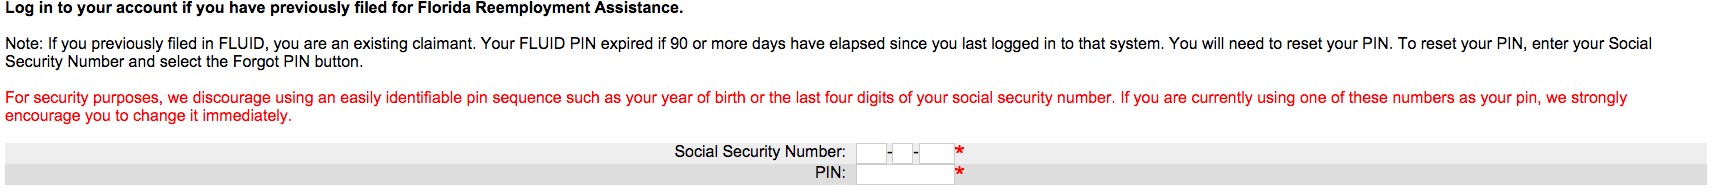 connect.myflorida.com: uses SSN and maximum PIN length of 4 digits